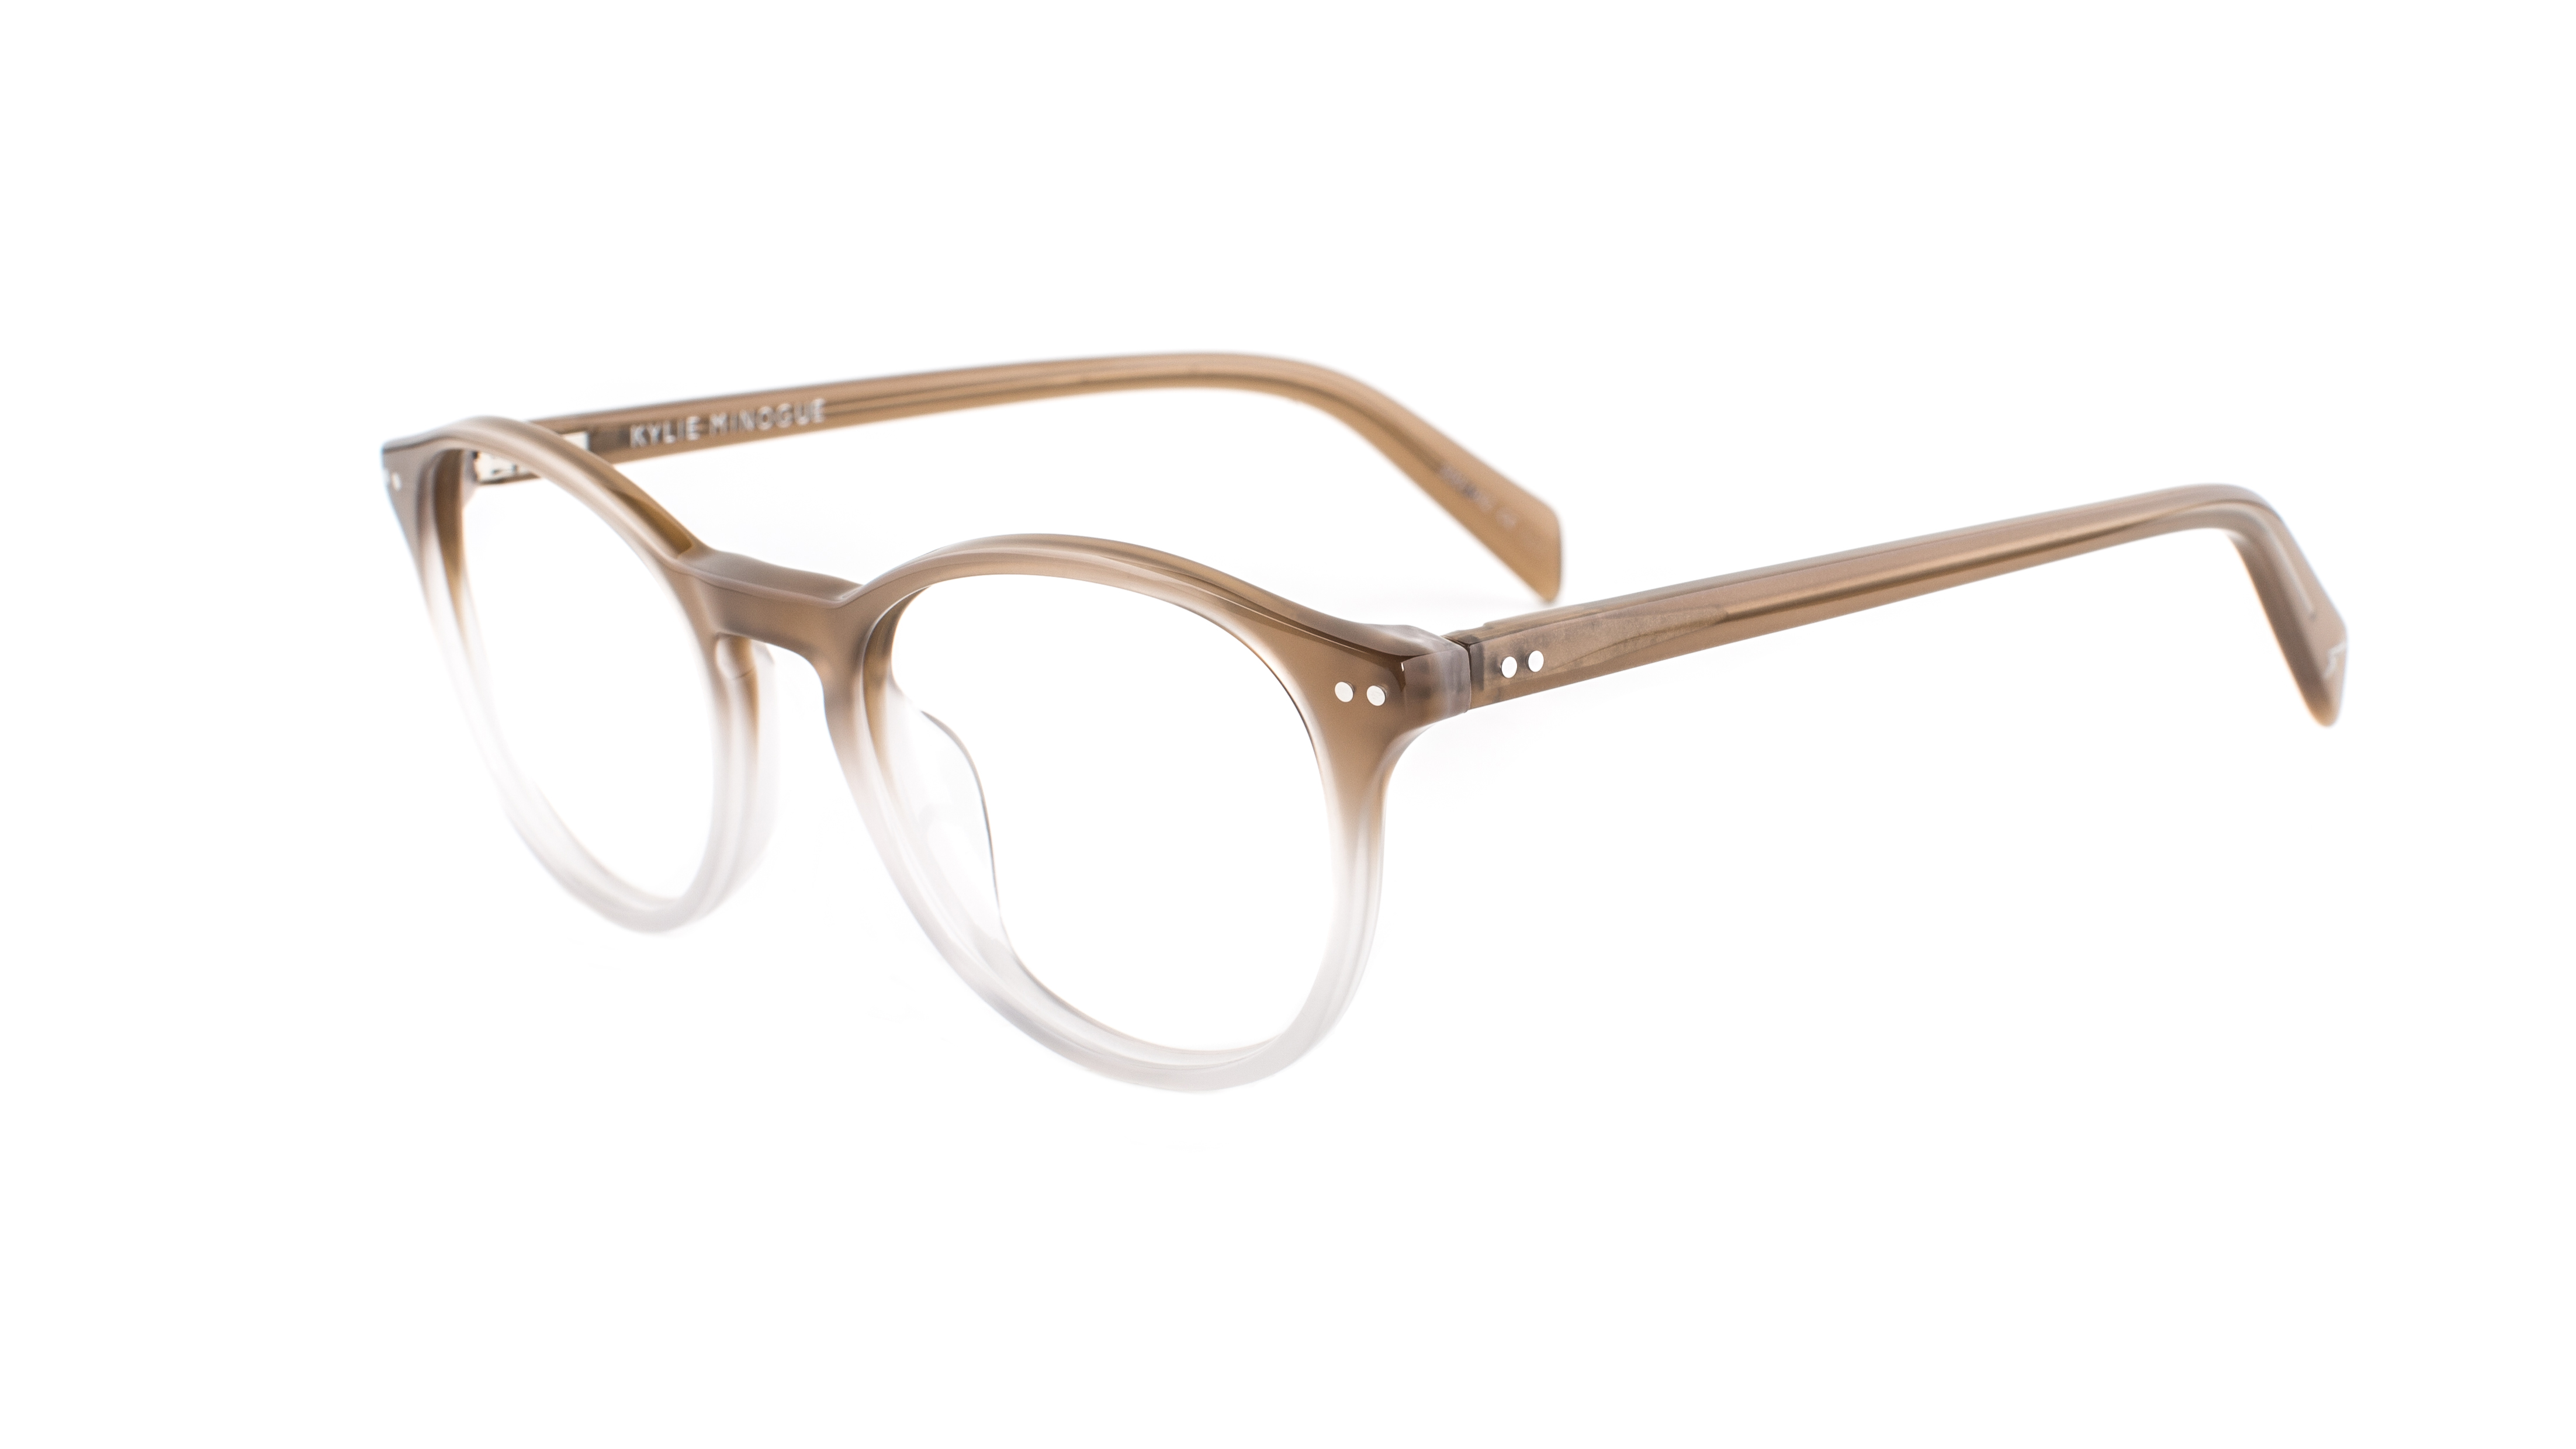 Kylie Minogue Eyewear_Kylie 12_SKU 30520288_RRP 2 pairs from $369 (2)